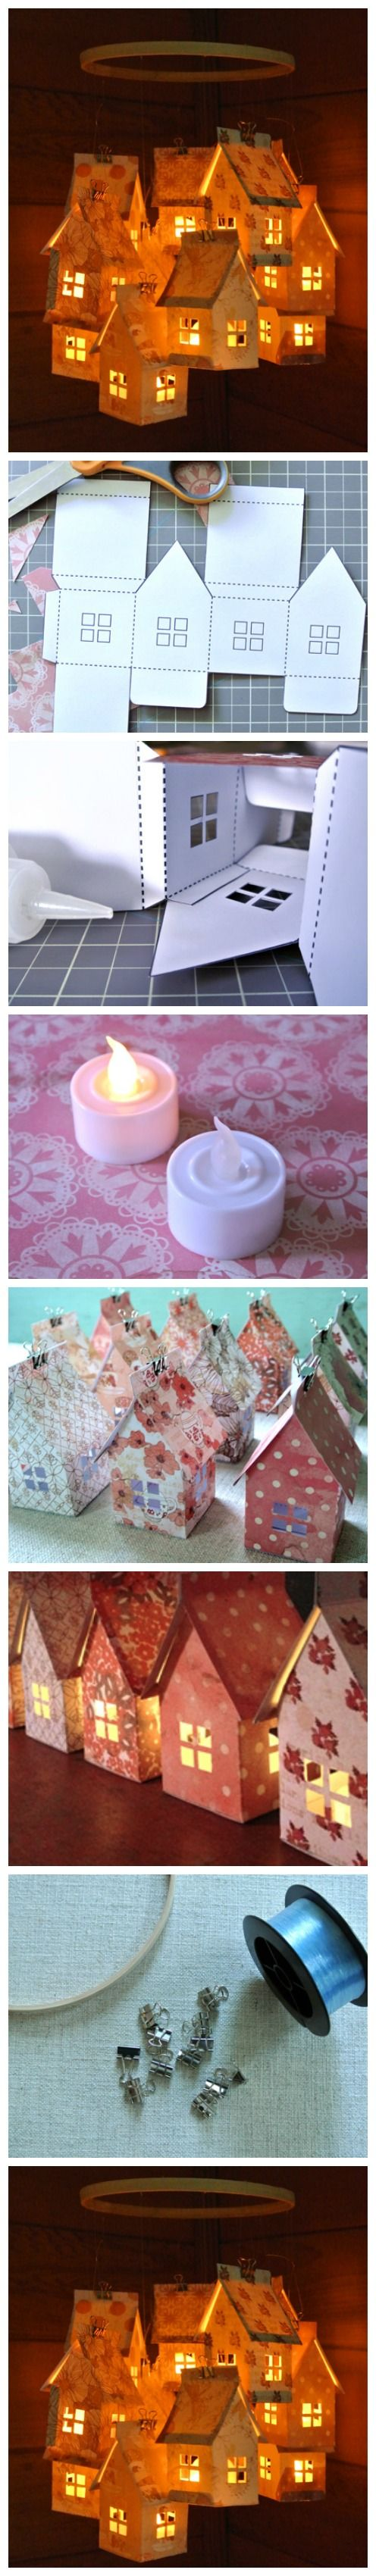 Paper House Luminaries and Mobile is part of diy_crafts - videos  Credits goes to the original author of this great […]